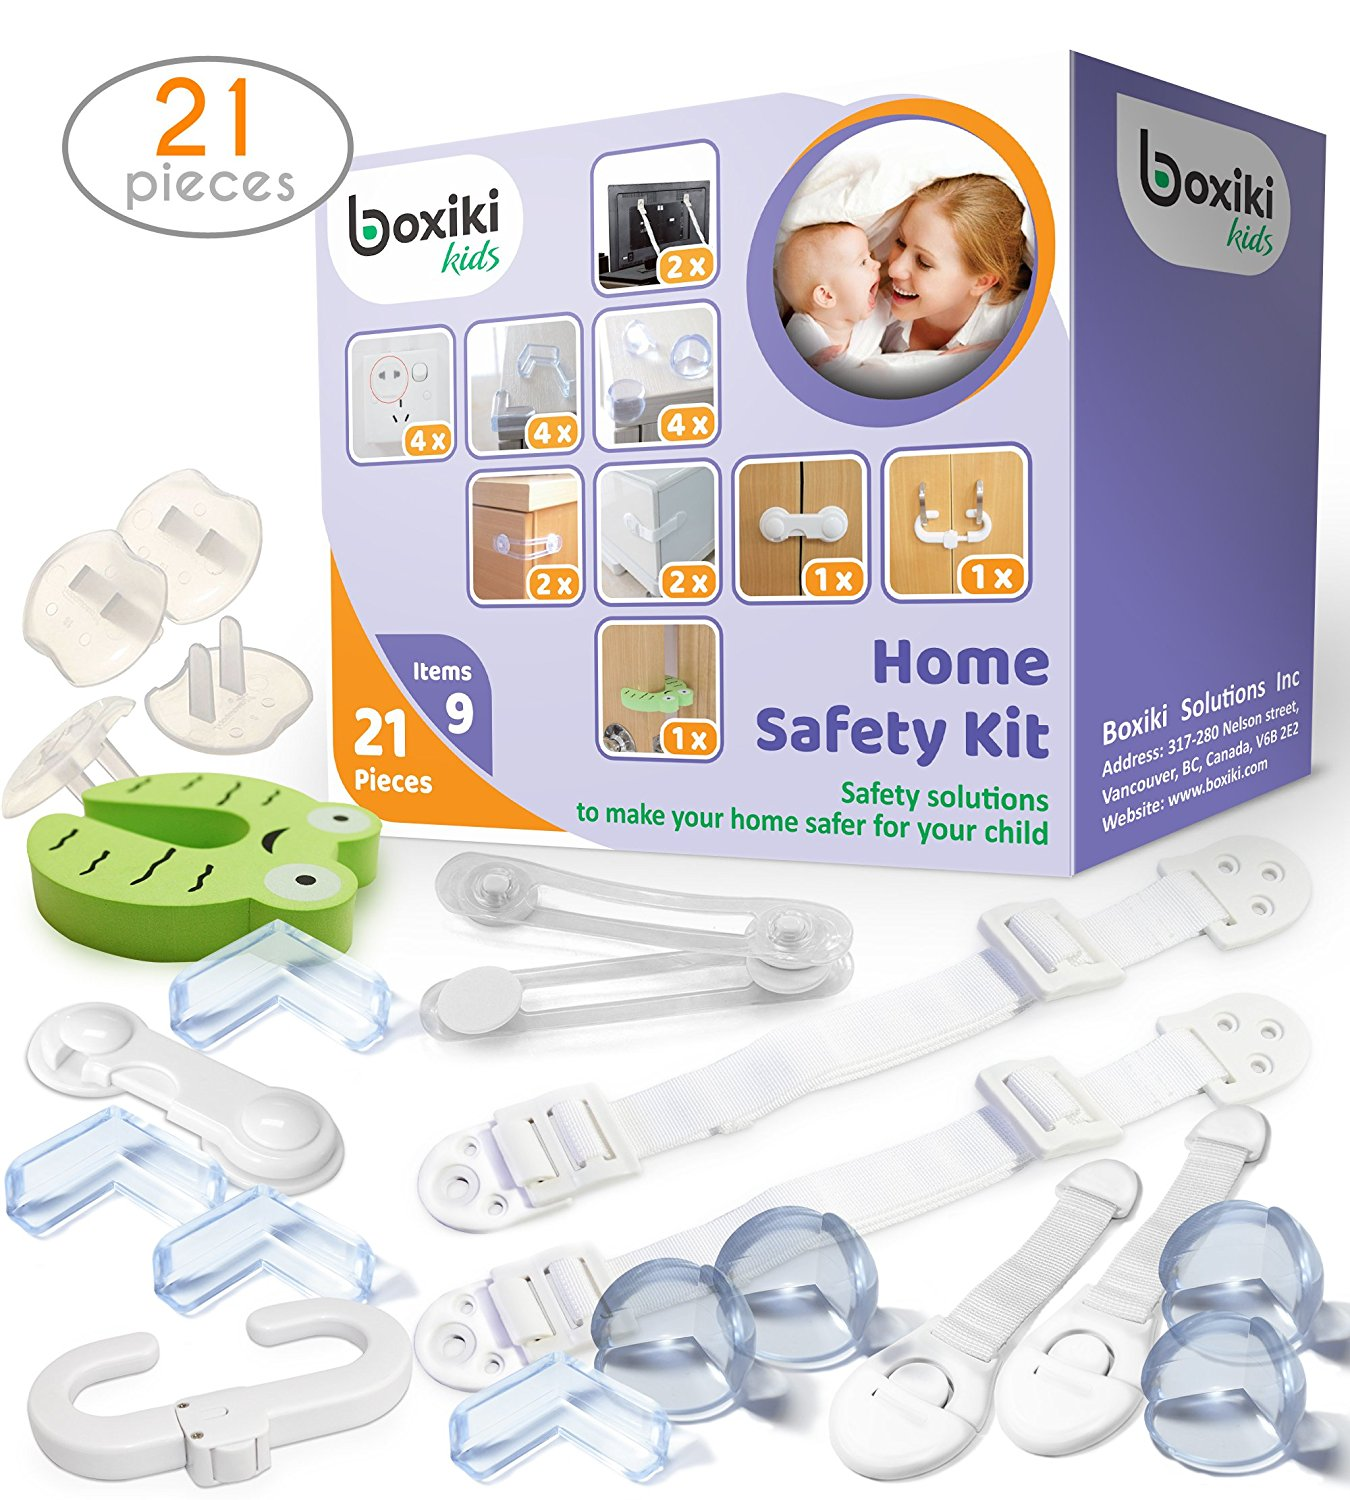 Child Safety Kit (21 pieces) by Boxiki Kids. 8 Corner Protectors, 4 Plug Protectors, 2 Anti-Tip Furniture... by Boxiki kids